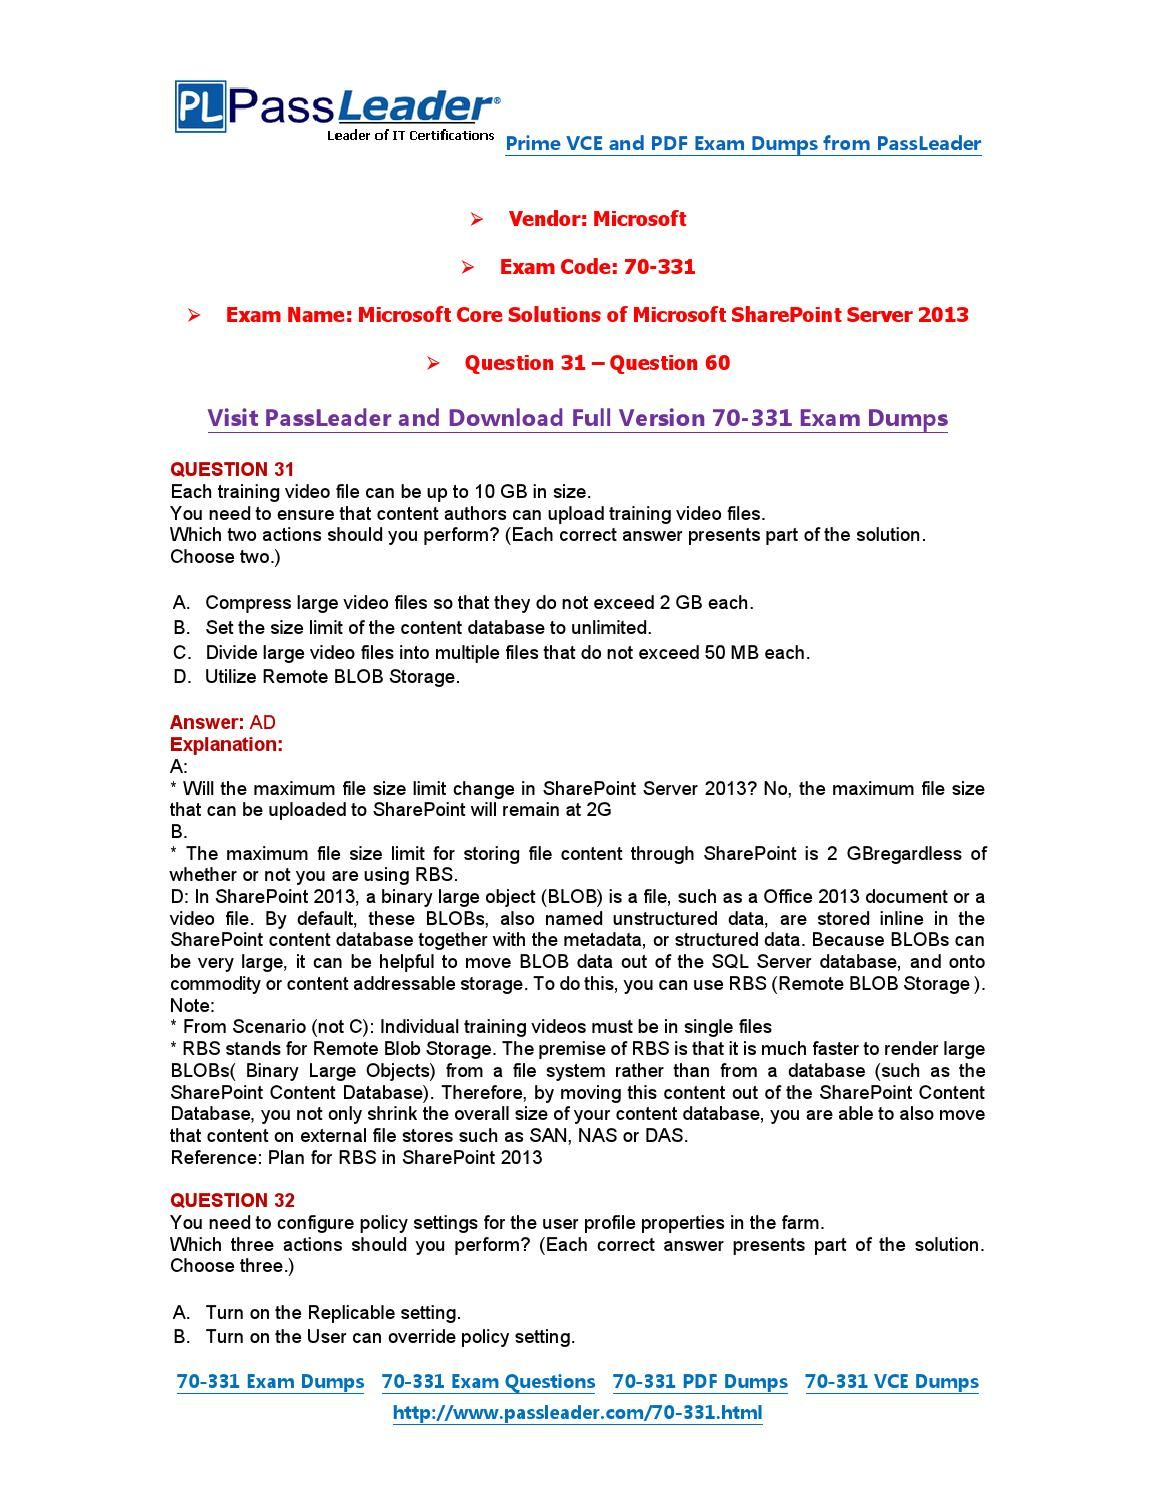 70-331 Exam Dumps with PDF and VCE Download (31-60) | 70-331